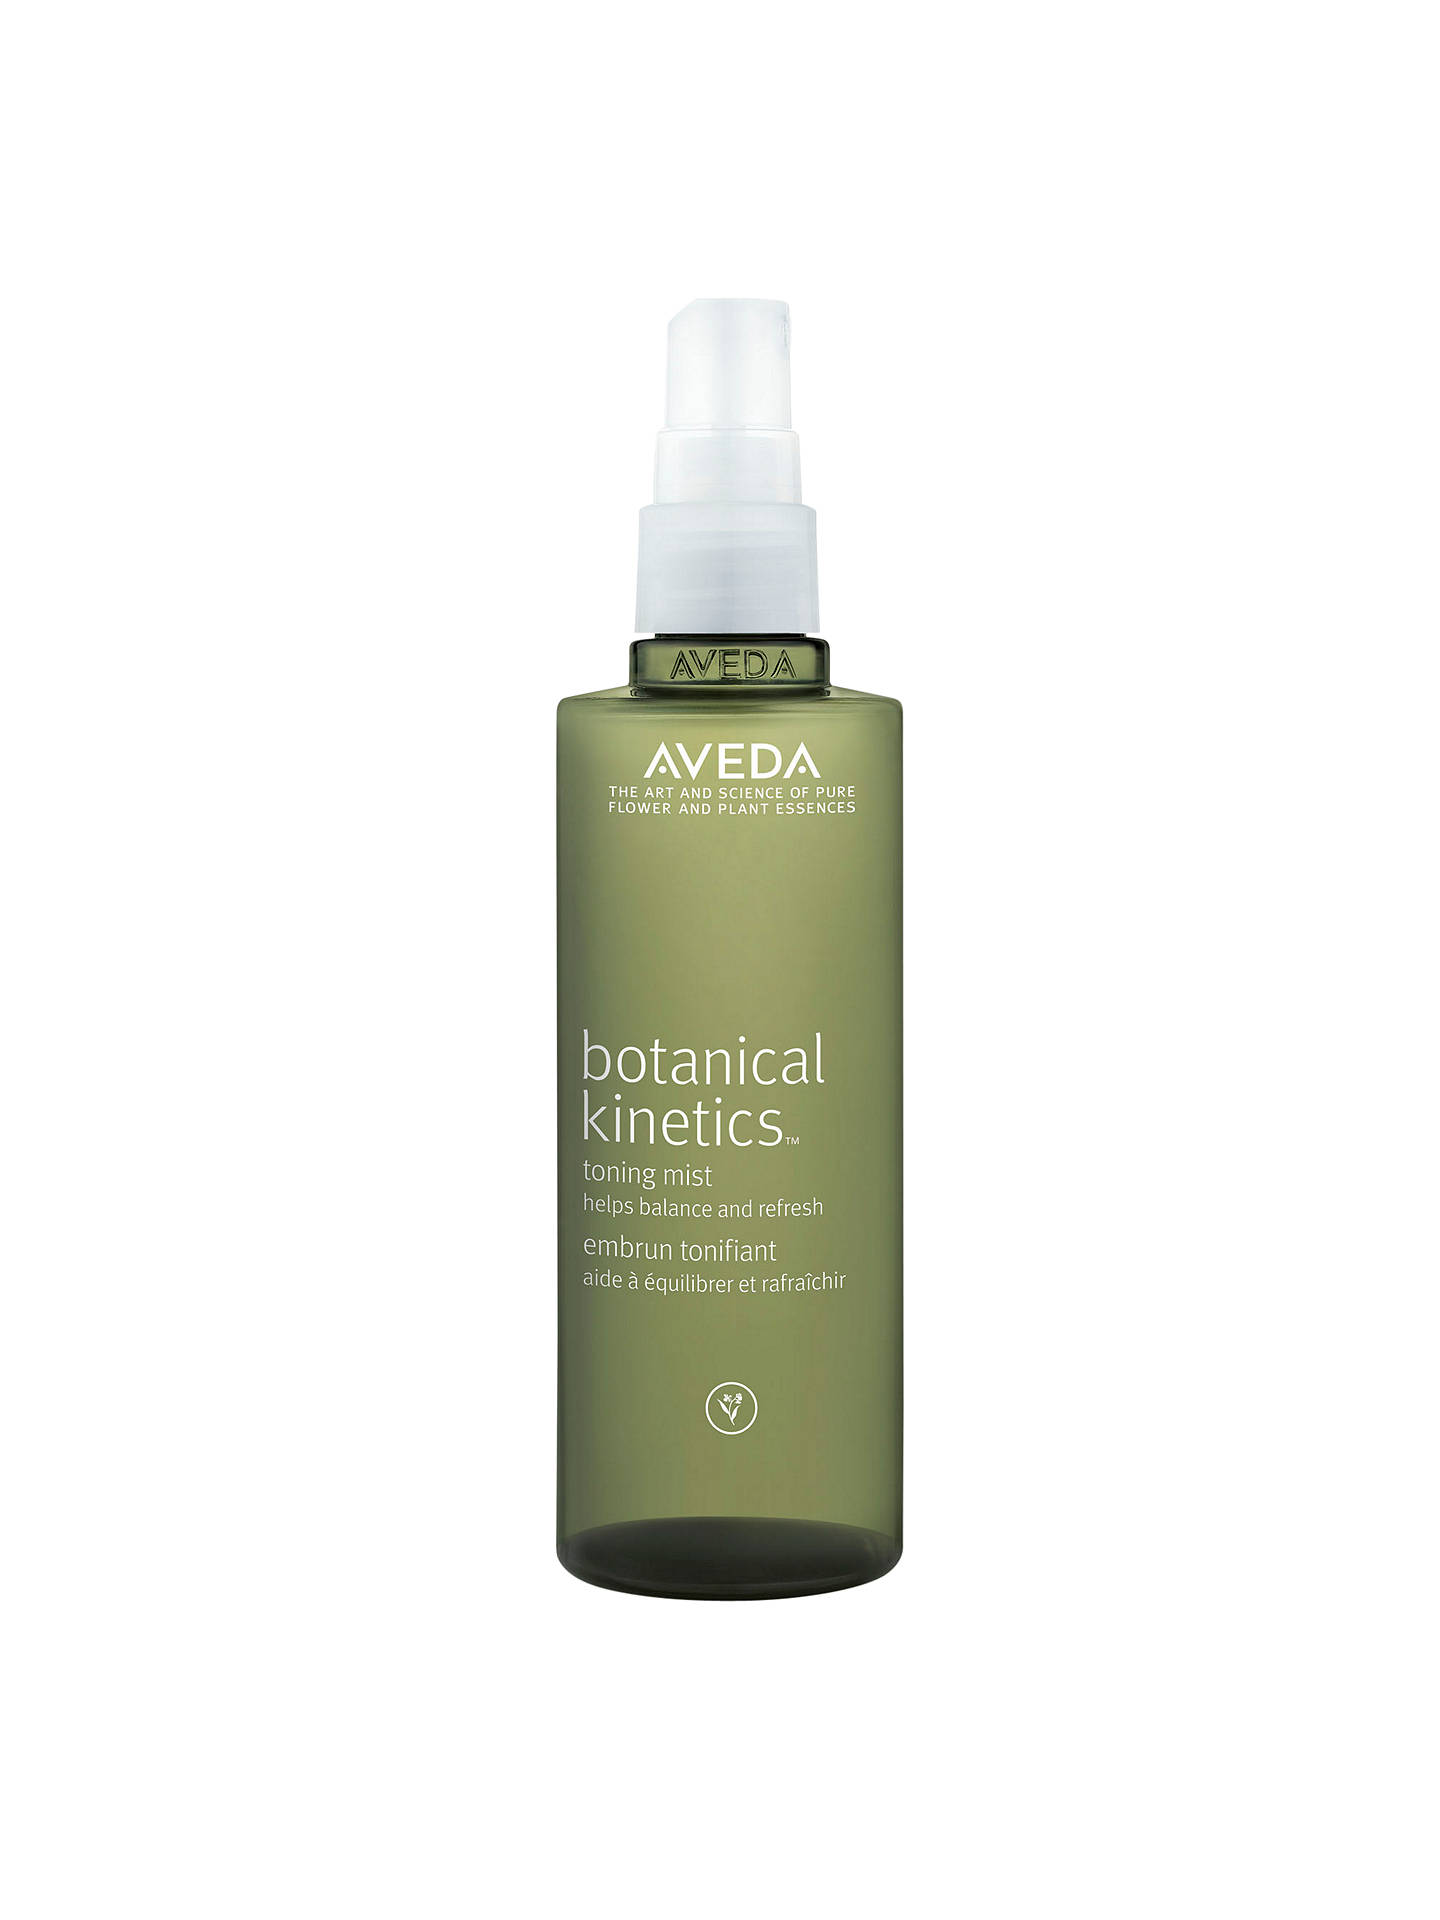 BuyAVEDA Botanical Kinetics™ Toning Mist, 150ml Online at johnlewis.com